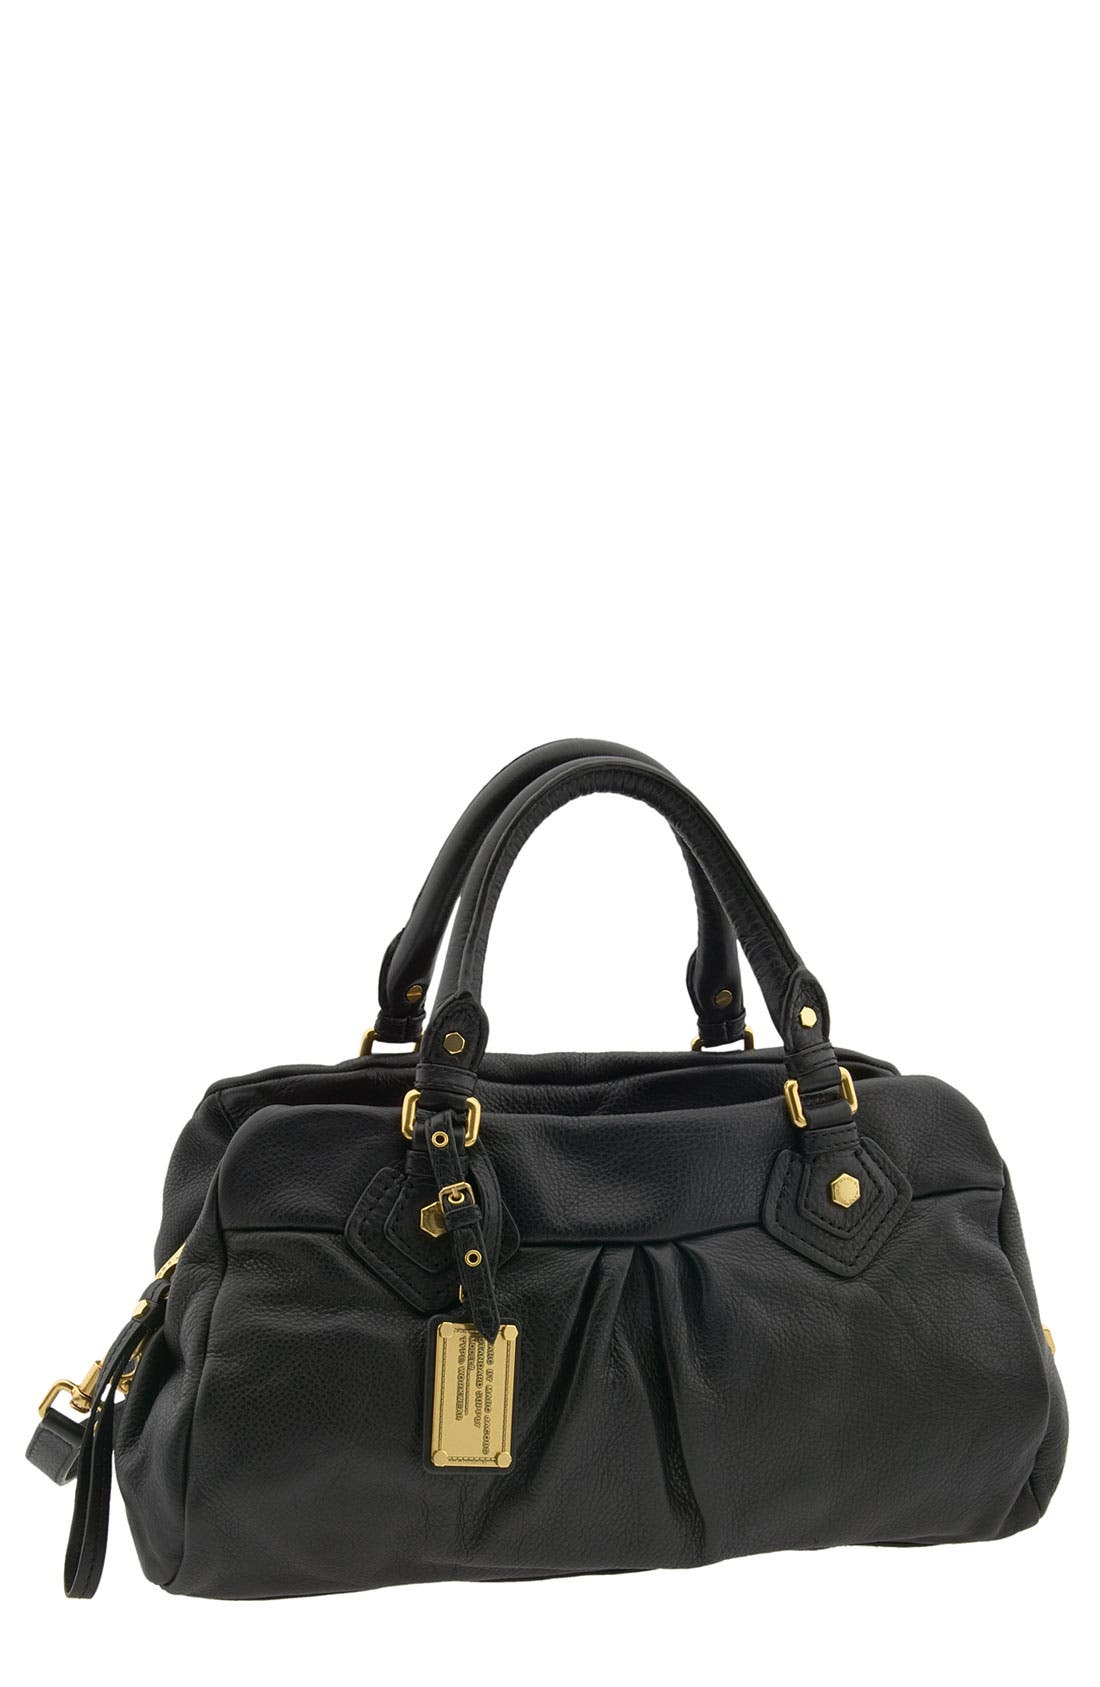 MARC BY MARC JACOBS 'Classic Q - Groovee' Satchel,                             Alternate thumbnail 2, color,                             001